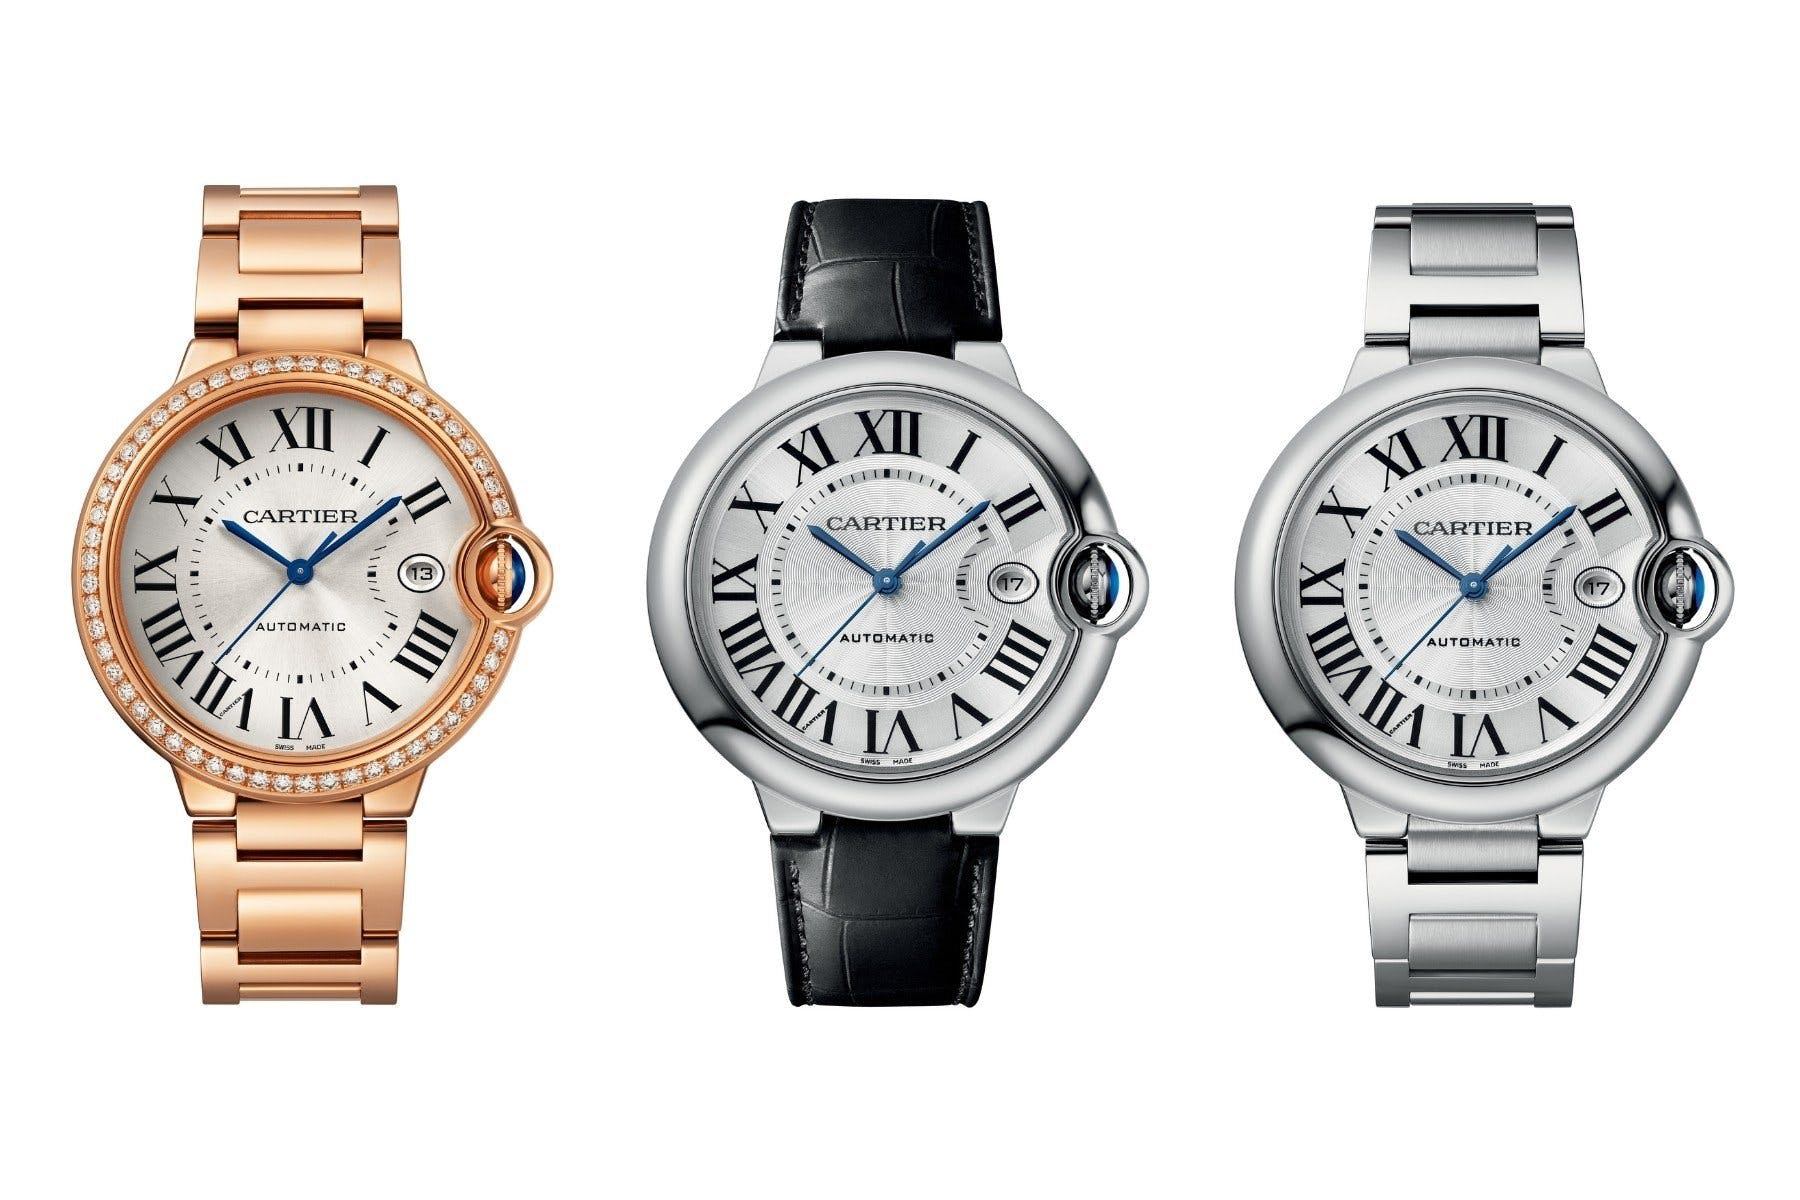 Cartier has released an all-new Ballon Bleu.